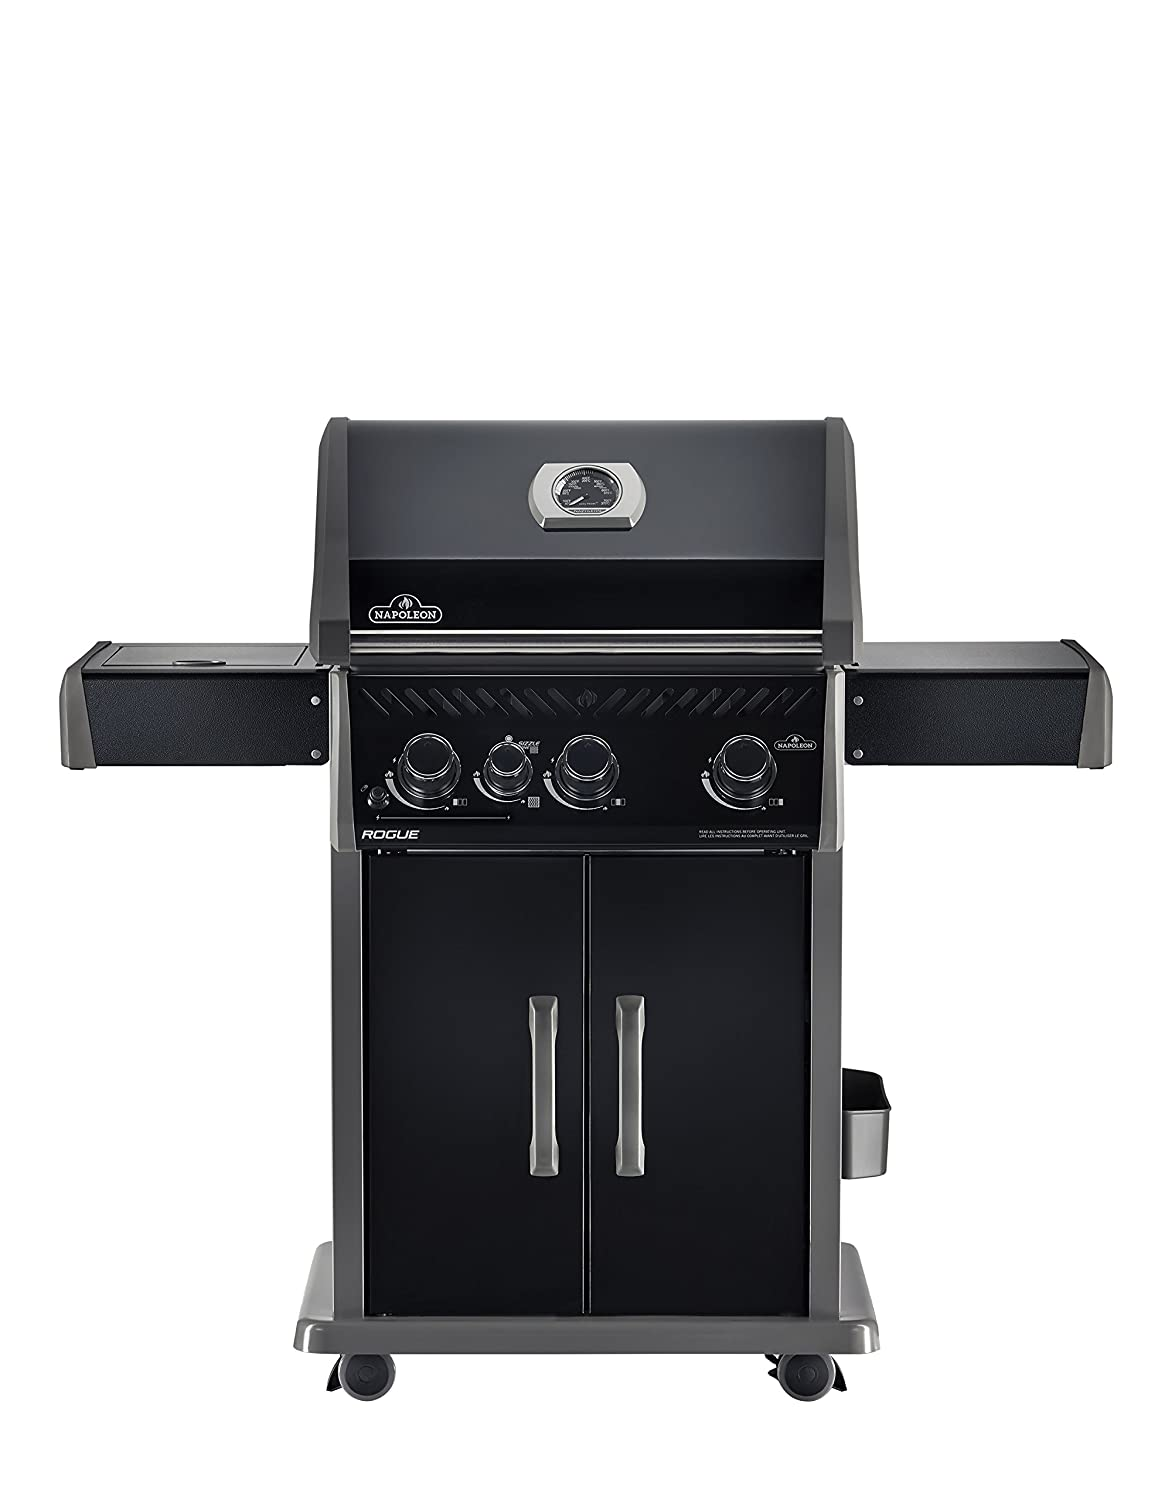 Napoleon R425SIBPBE Rogue 425 sq. in. Black Edition Propane Gas Grill with Infrared Side Burner